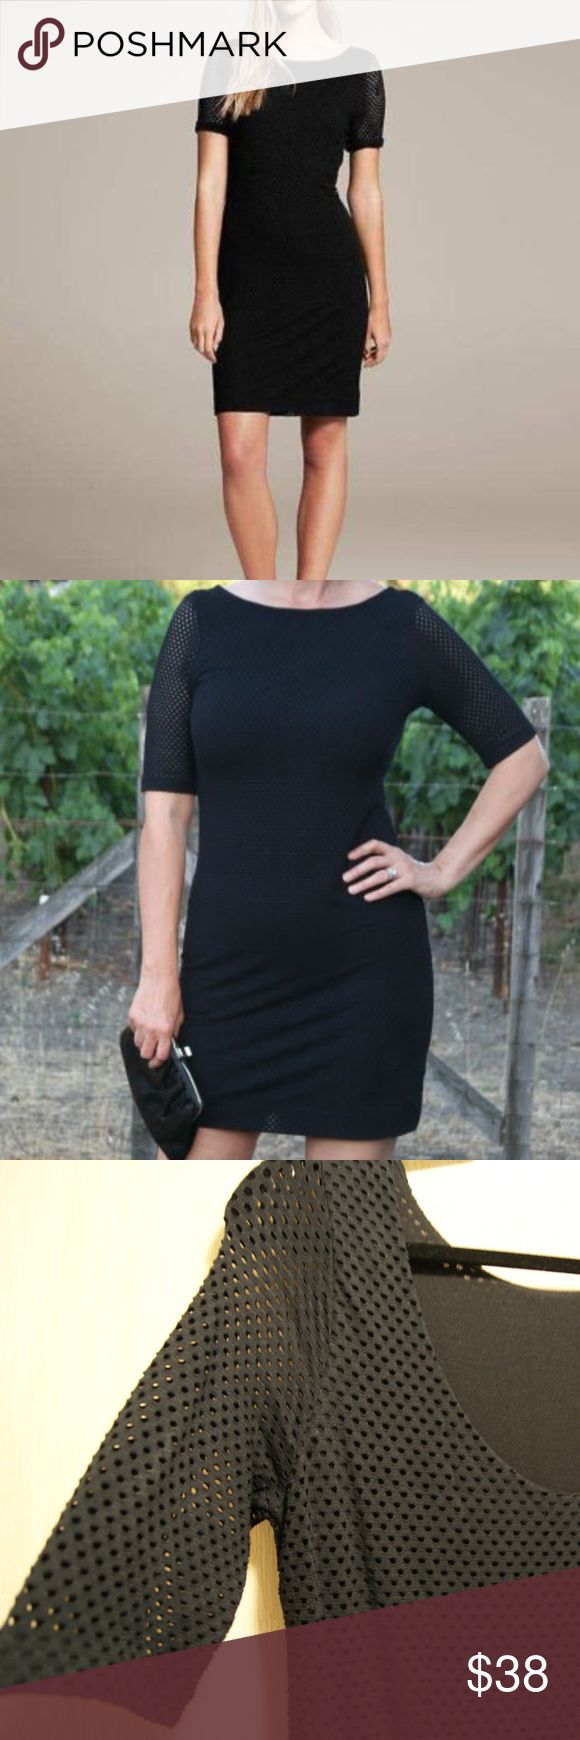 "NWT BANANA REPUBLIC BLACK KNIT PERFORATED DRESS, 8 NEW BANANA REPUBLIC BLACK KNIT PERFORATED DRESS, SZ 8, MSRP $110.00!  STYLE: KNIT PERFORATED DRESS / 95% RAYON, 5% SPANDEX / BOATNECK / ELBOW-LENGTH SLEEVES. COLOR: BLACK/SIZE: 8 / BODY LENGTH: REGULAR: 35"" CONDITION: NEW WITH TAGS THIS DRESS IS GREAT EITHER FOR WORK AND OR EVENING WEAR. IT LOOKS ELEGANT AND IS EXTREMELY COMFORTABLE, DRESSED UP WITH PUMPS, BLAZER AND NICE JEWELRY. THE MATERIAL IS SOFT AND HAS A NICE STRETCH. THE LENGTH IS…"